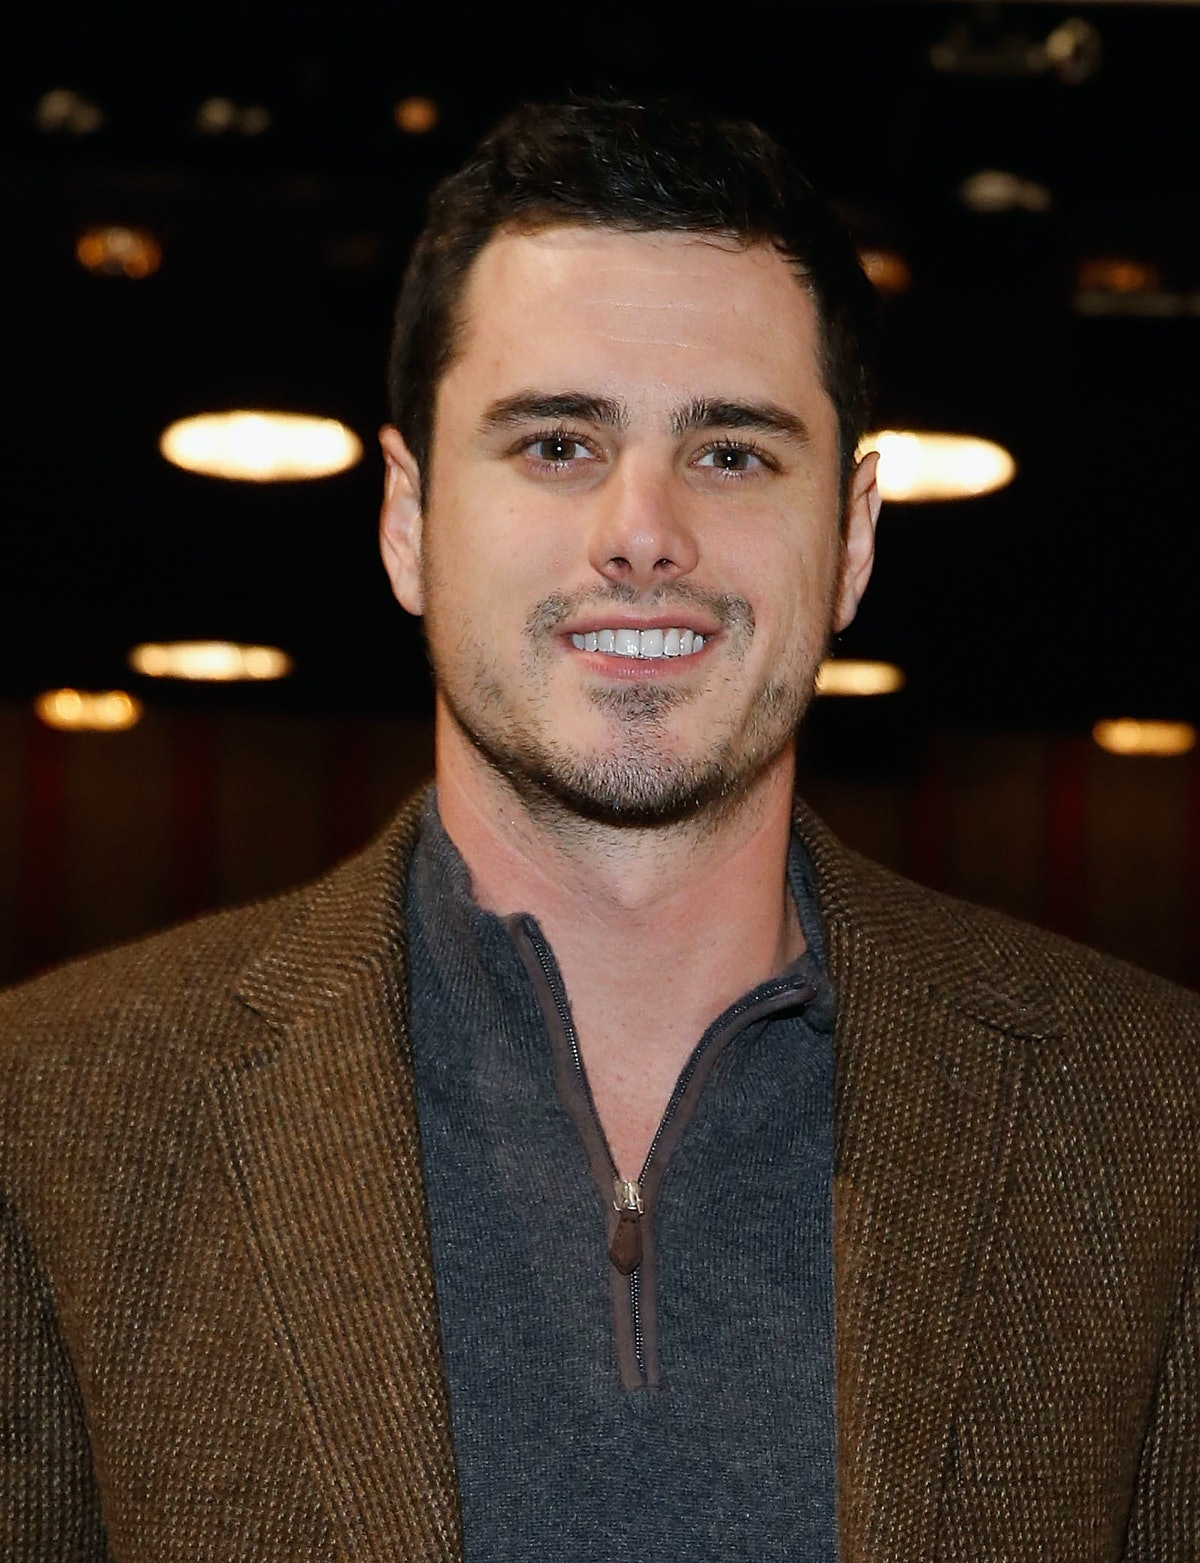 Ben Higgins' Birthday Message From Girlfriend Jessica Clarke Couldn't Be More Loving